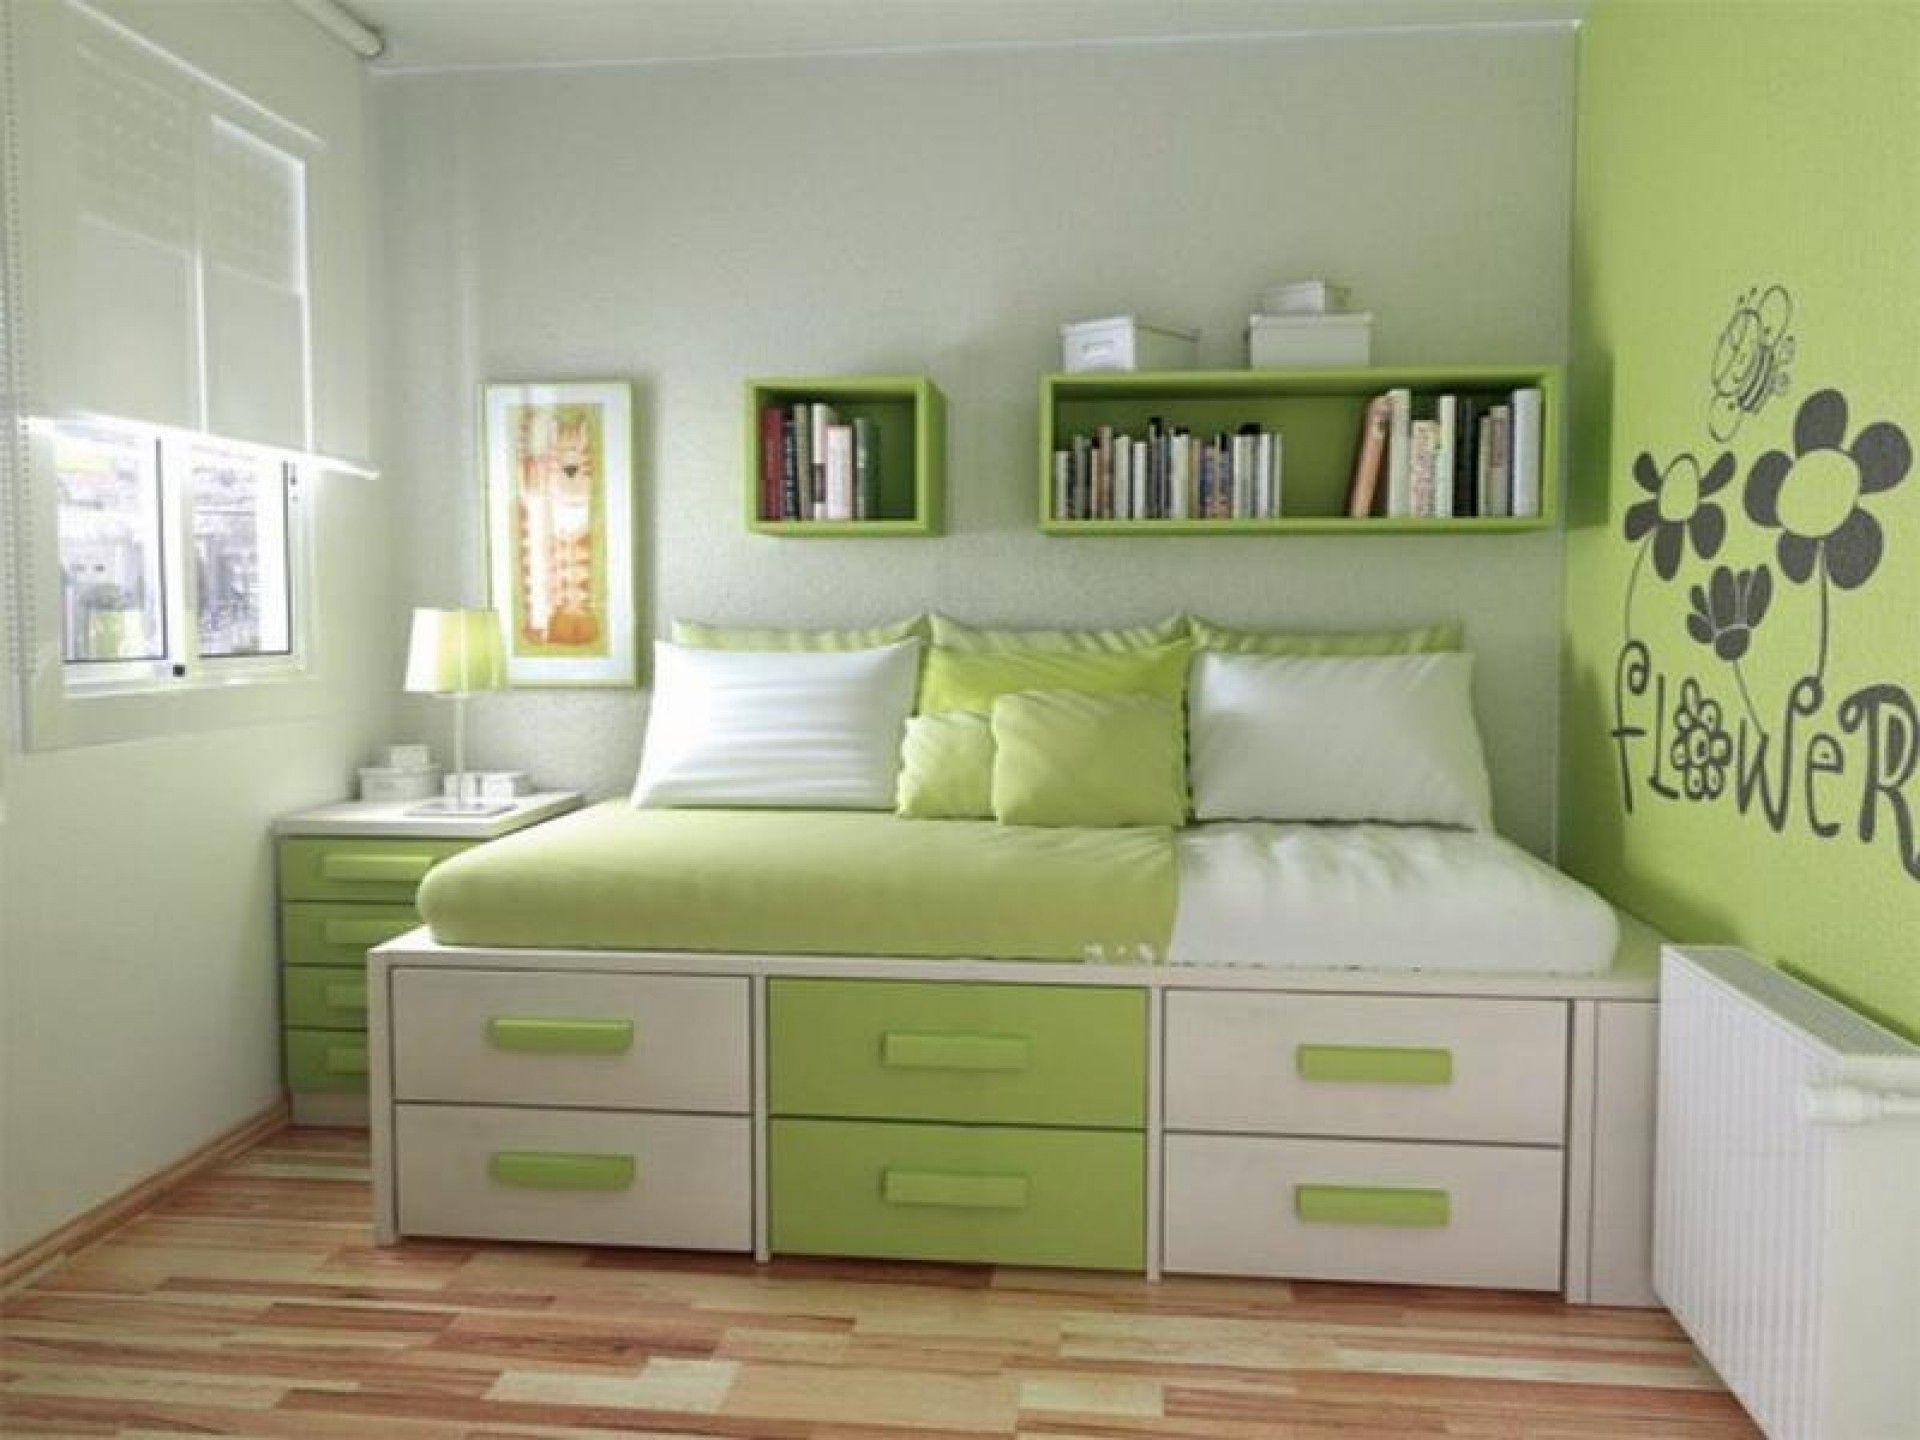 Uncategorized Marvelous Small Bedroom Paint Ideas With White Green